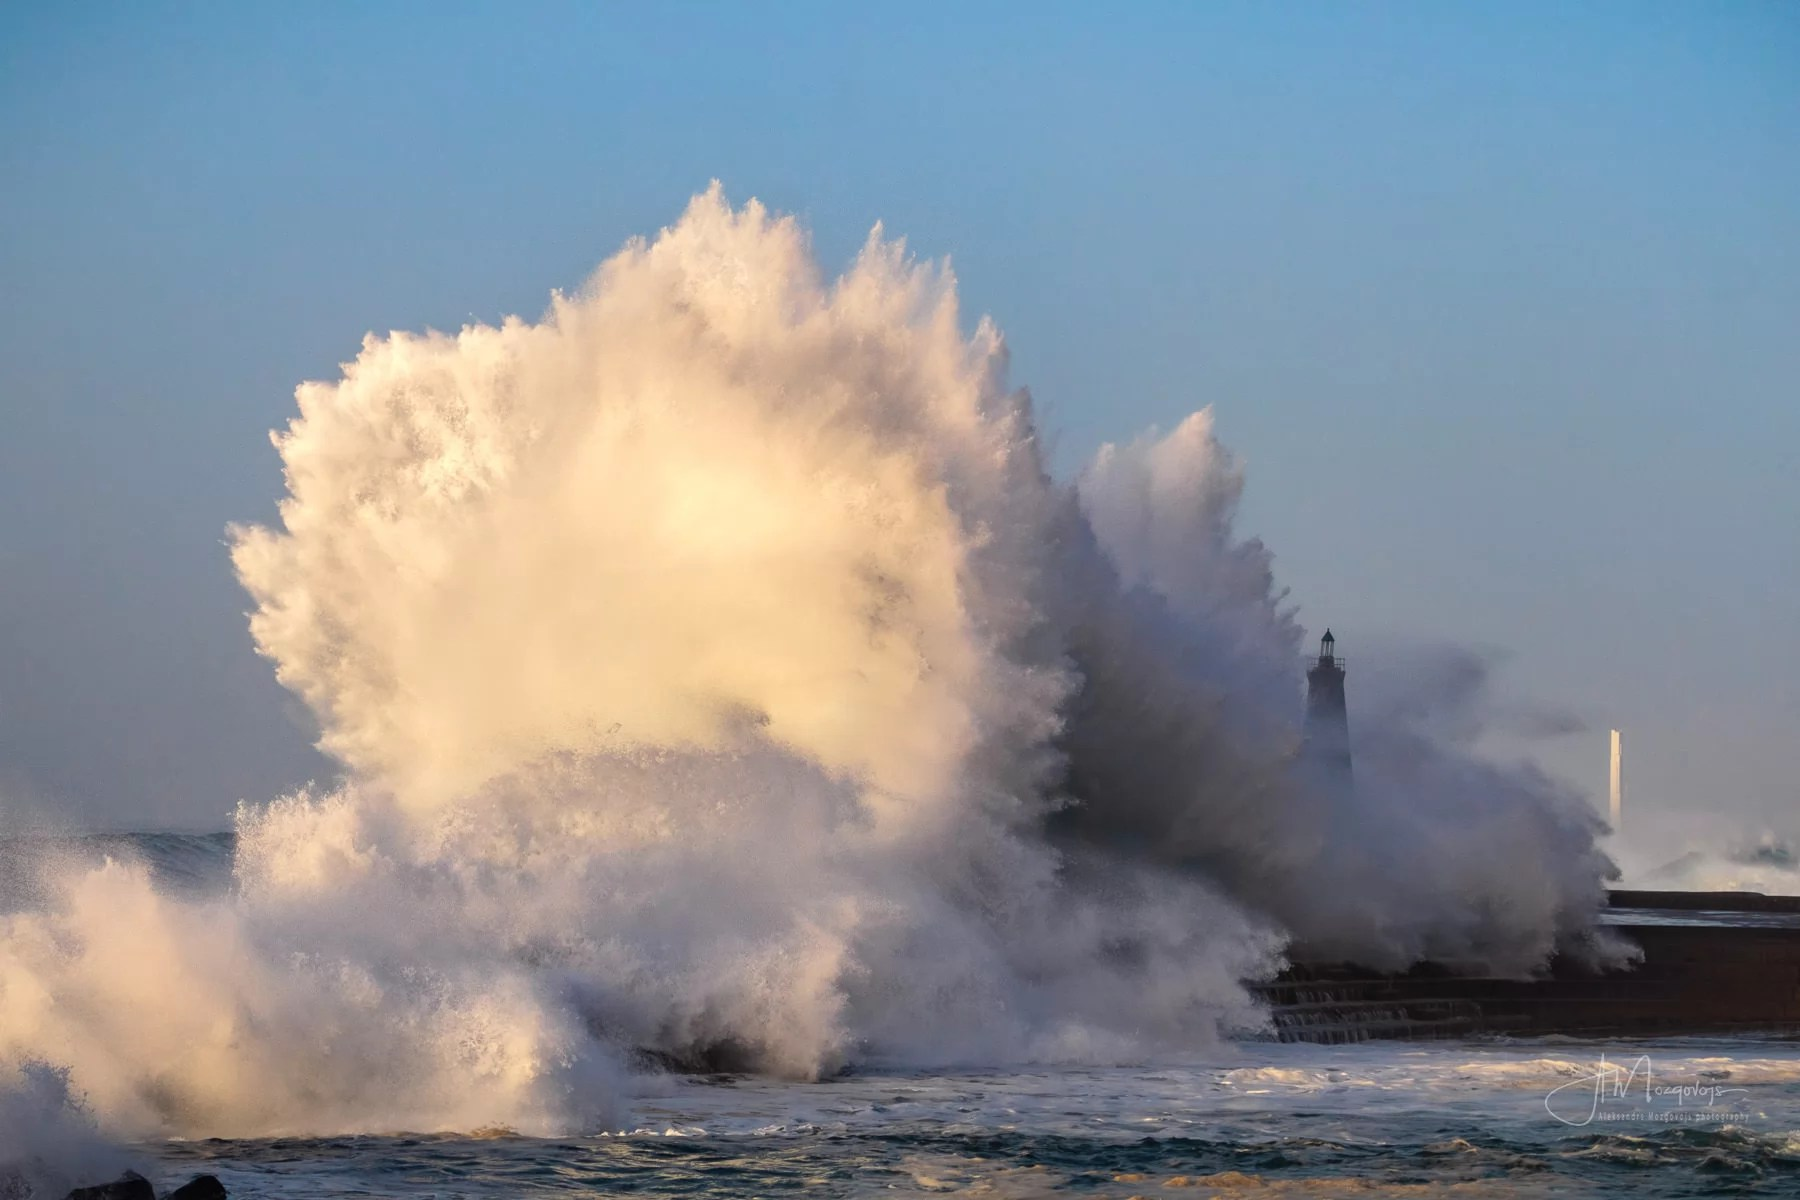 Waves hitting Bajamar lighthouse